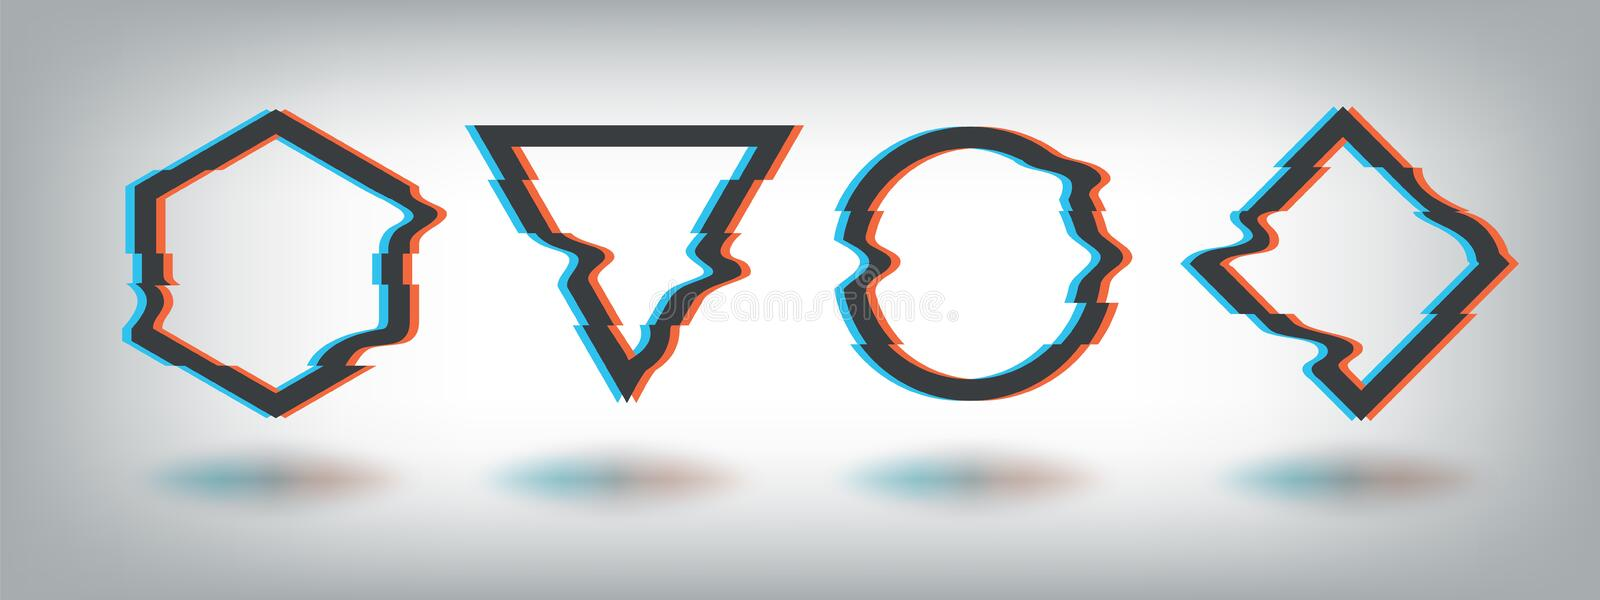 Glitch effect frames. Distorted noise shape, vhs tv defect, dynamic abstract music logo, circle square triangle vector royalty free illustration